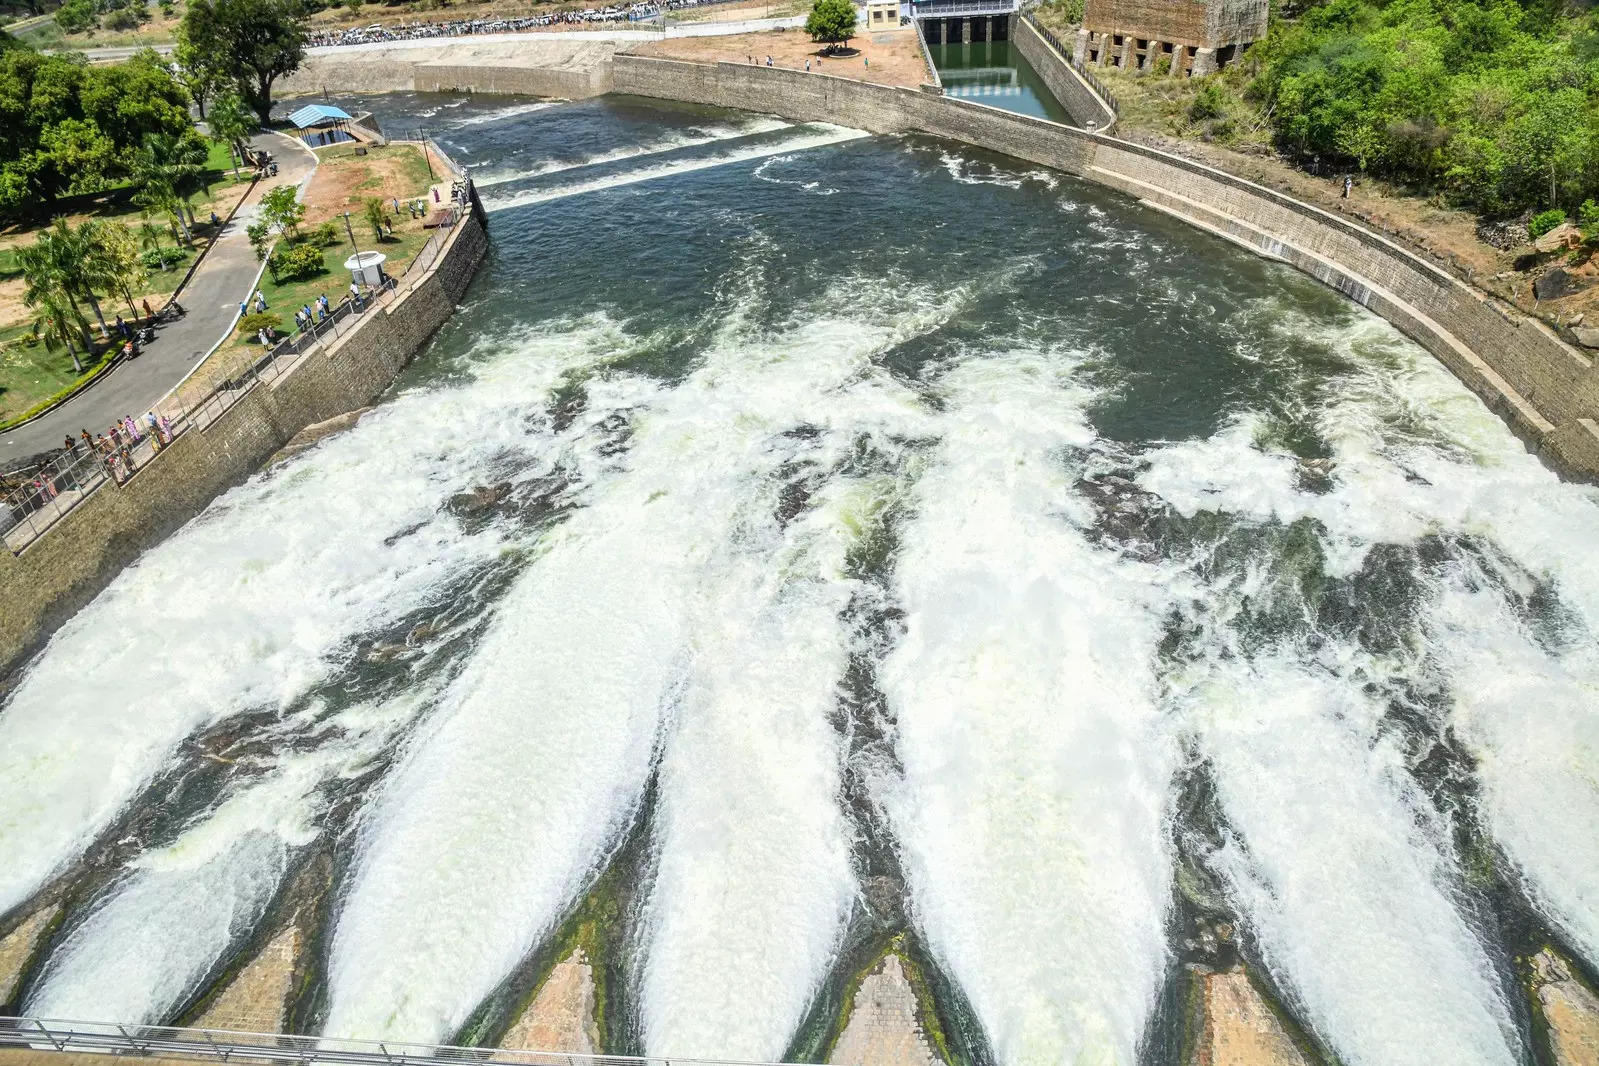 VWF assessment is aimed to induce sustainability that can lead to water security, says IIT Guwahati Research